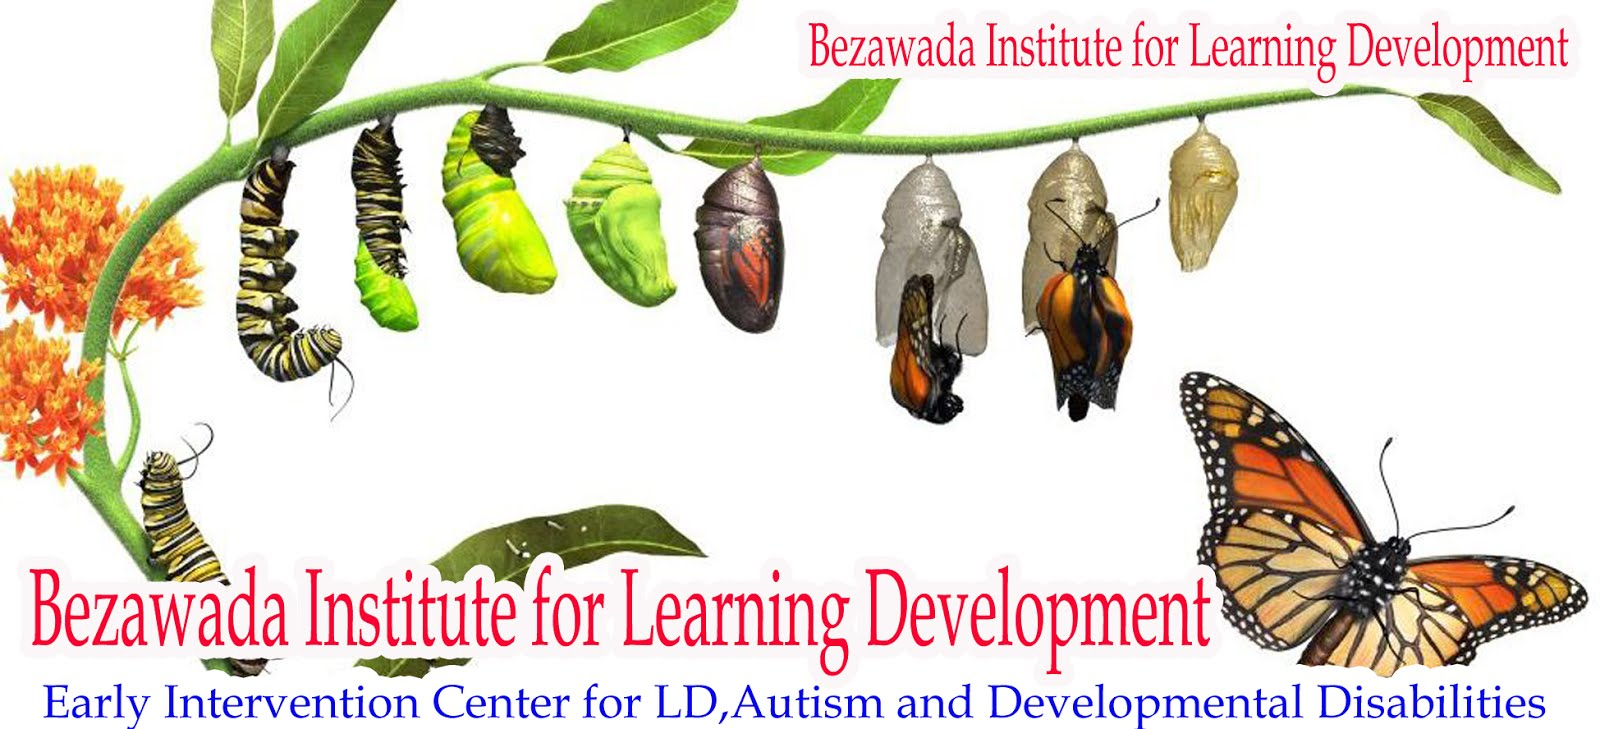 Bezawada Institute for Learning Development